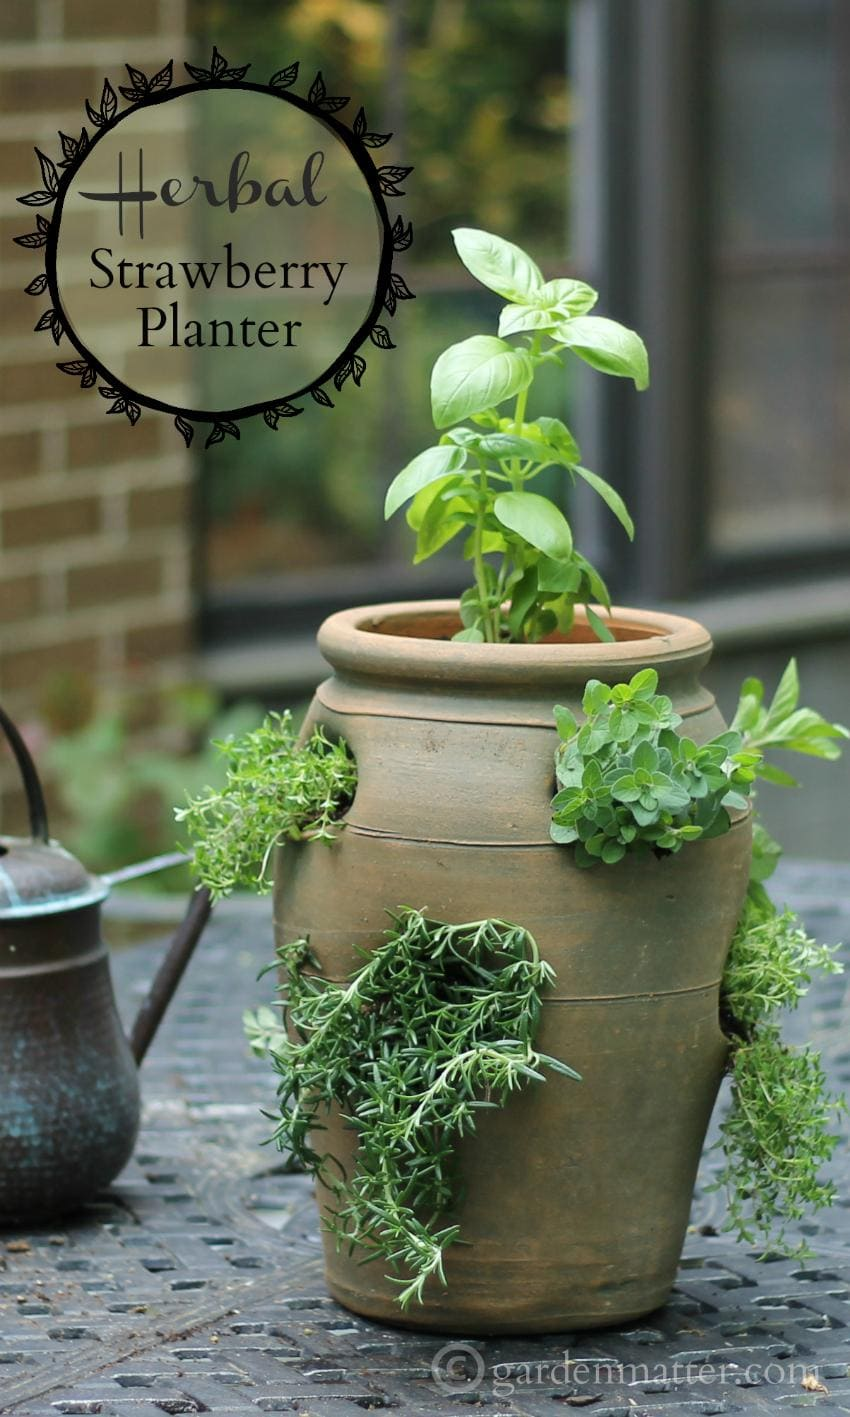 You can create a culinary herb garden by growing herbs in a strawberry pot which gives the herbs great drainage and saves on space.